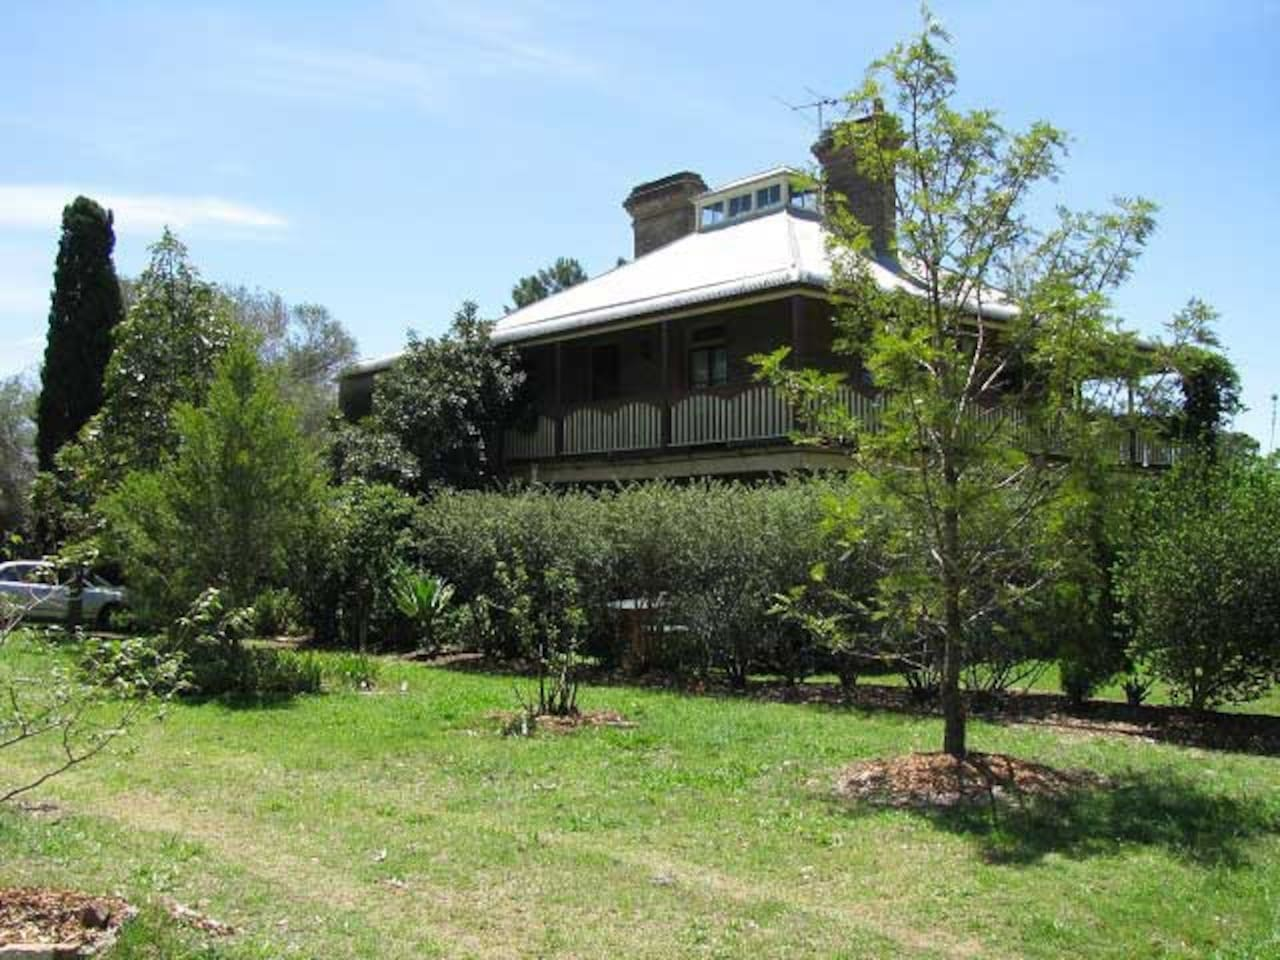 The Oaks is a beautiful Victorian home circa. 1880 surrounded by peaceful manicured gardens.